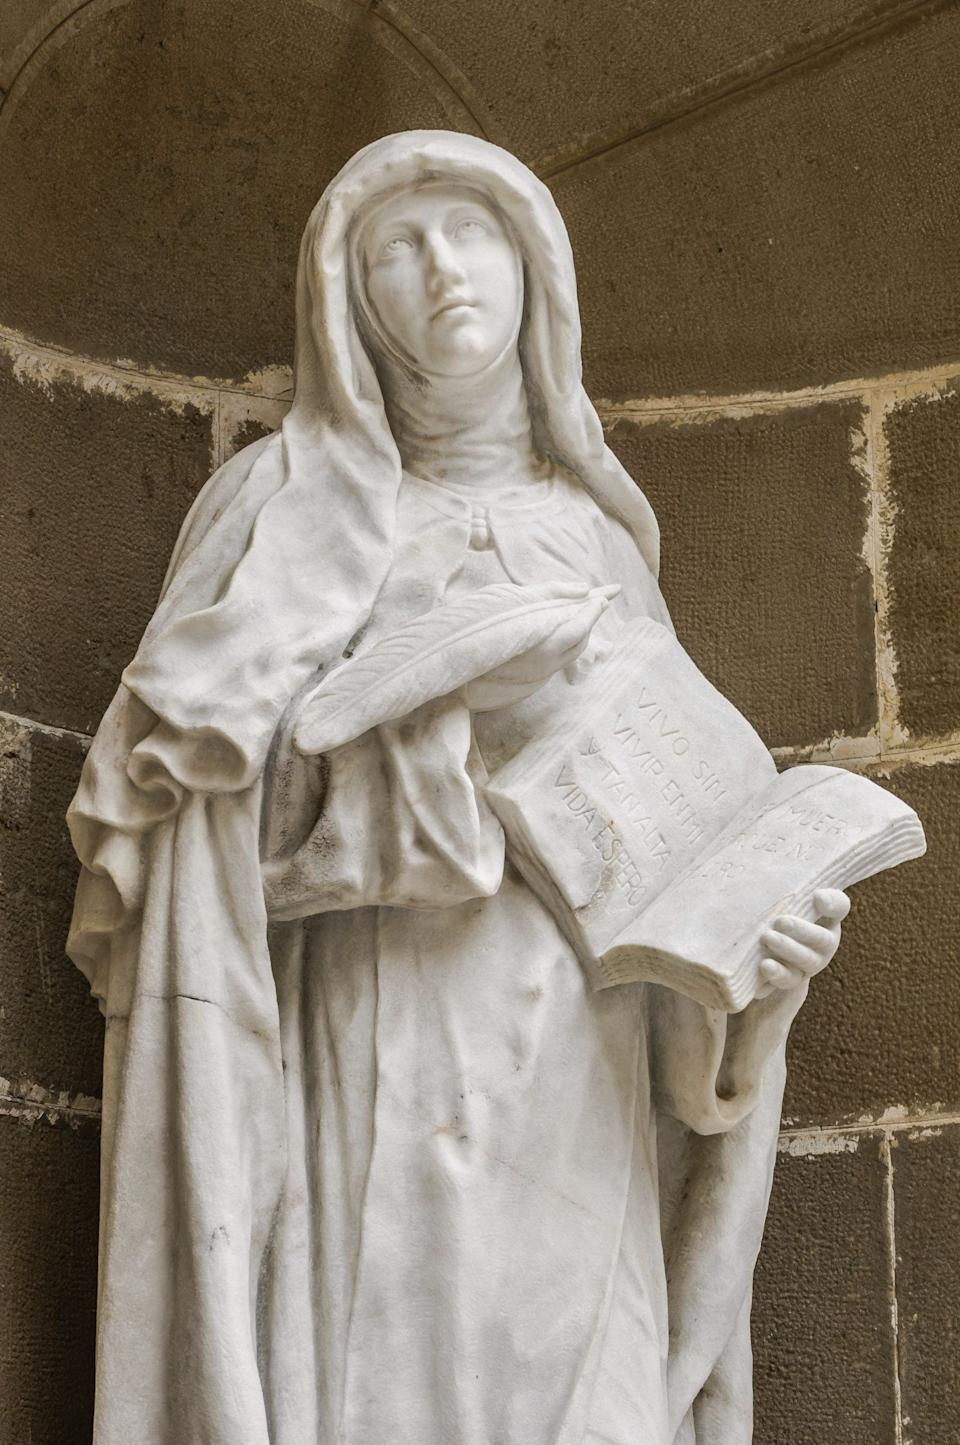 "<a href=""http://www.ewtn.com/library/MARY/AVILA.htm"">Teresa of Avila</a> was born in Spain during the 16th century to a well-to-do family. Teresa was fascinated by stories of the Christian saints and martyrs from a young age and explored these interests through mystical games she played with her brother, Roderigo. Her early efforts to join a convent were interrupted by the disapproval of her father, as well as several bouts of malaria. She turned instead to quiet prayer and contemplation and attained what she described in her autobiography as the ""prayer of union,"" in which she felt her soul absorbed into God's power. She went on to join a convent and was said to have at one point restored her young nephew to health after he was crushed by a fallen wall. The episode was presented at the process for Teresa's canonization, which took place in 1662."